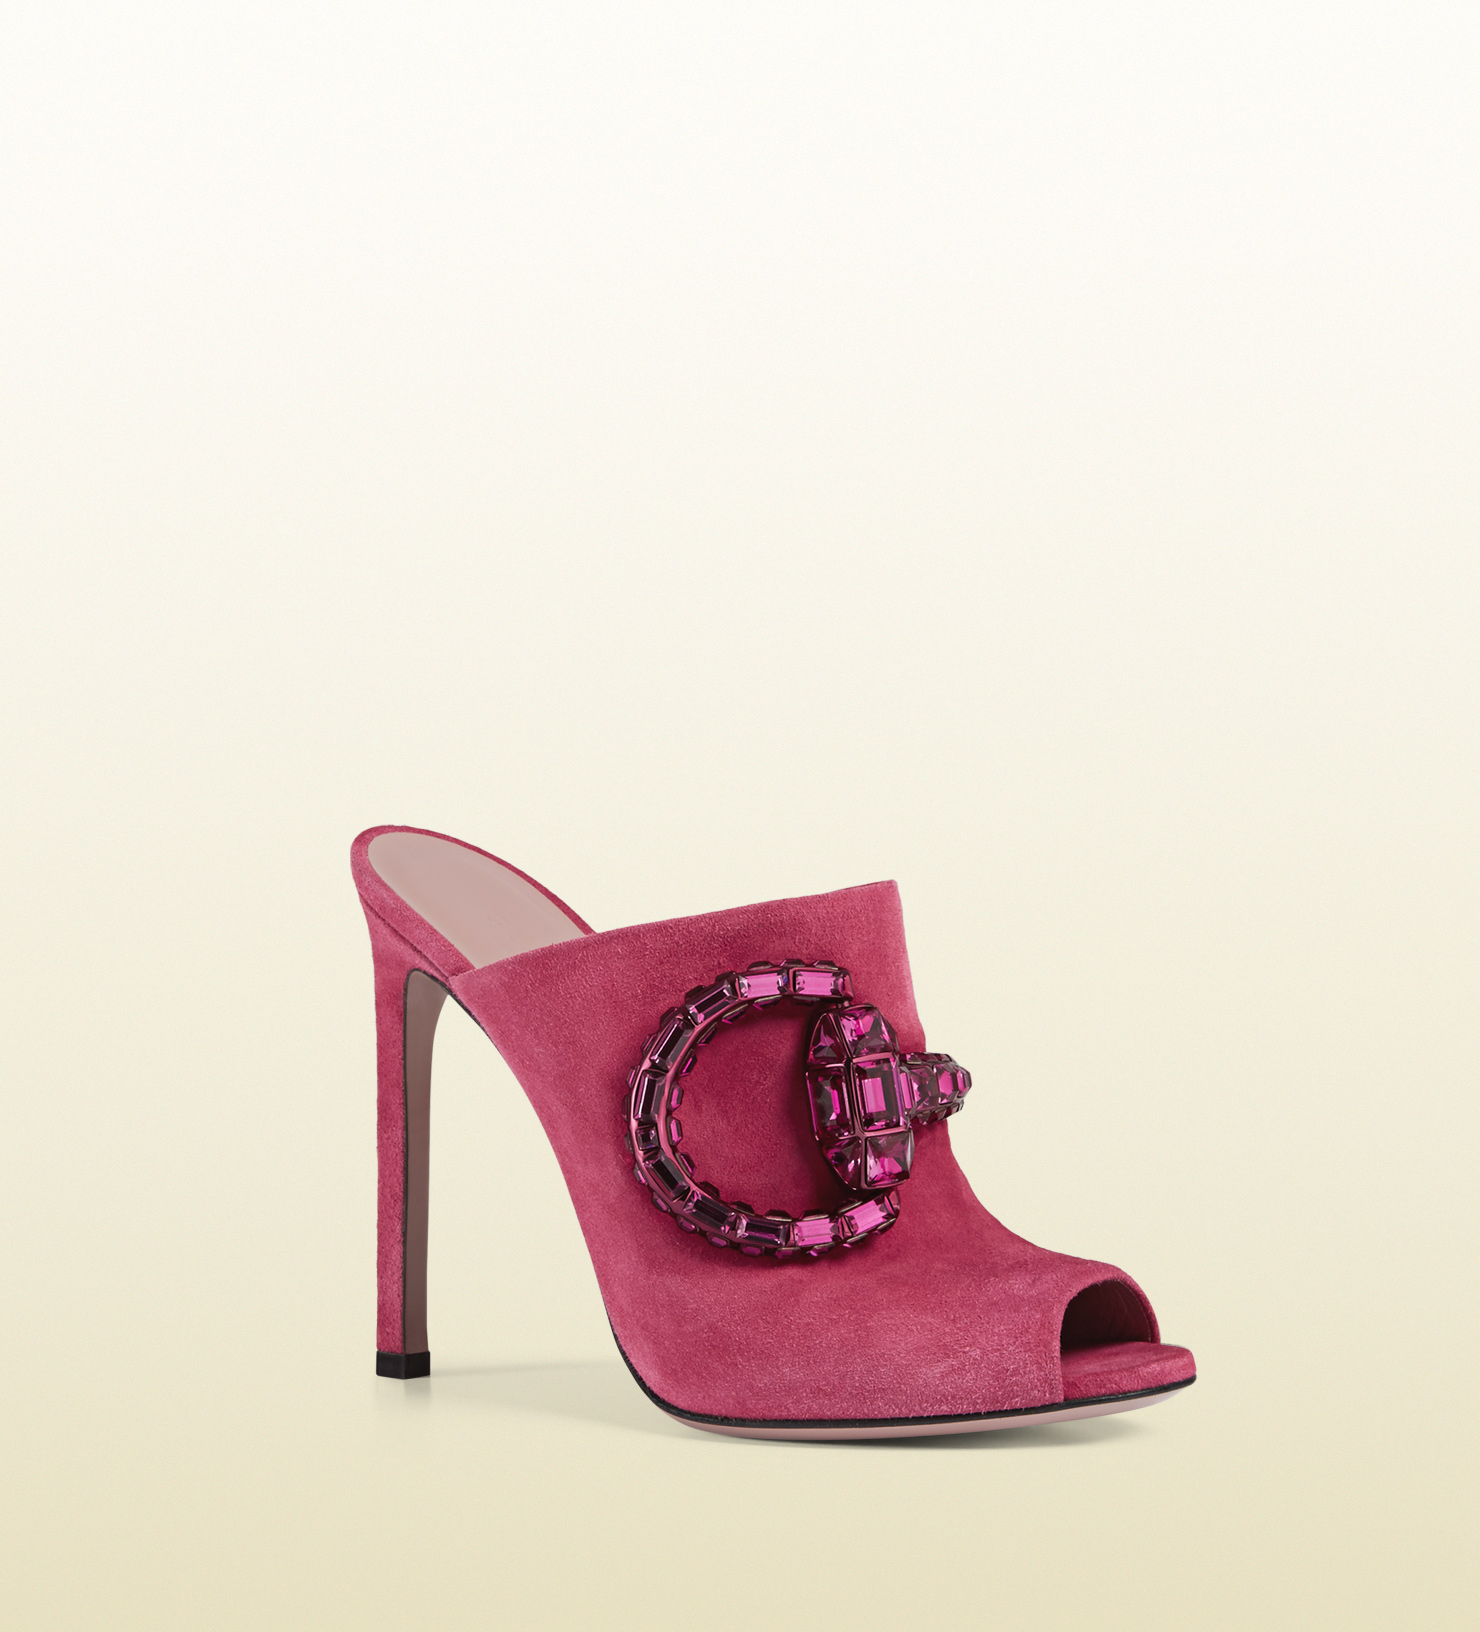 472c108807608d Lyst - Gucci Maxime Crystal Covered Horsebit Suede Sandal in Pink